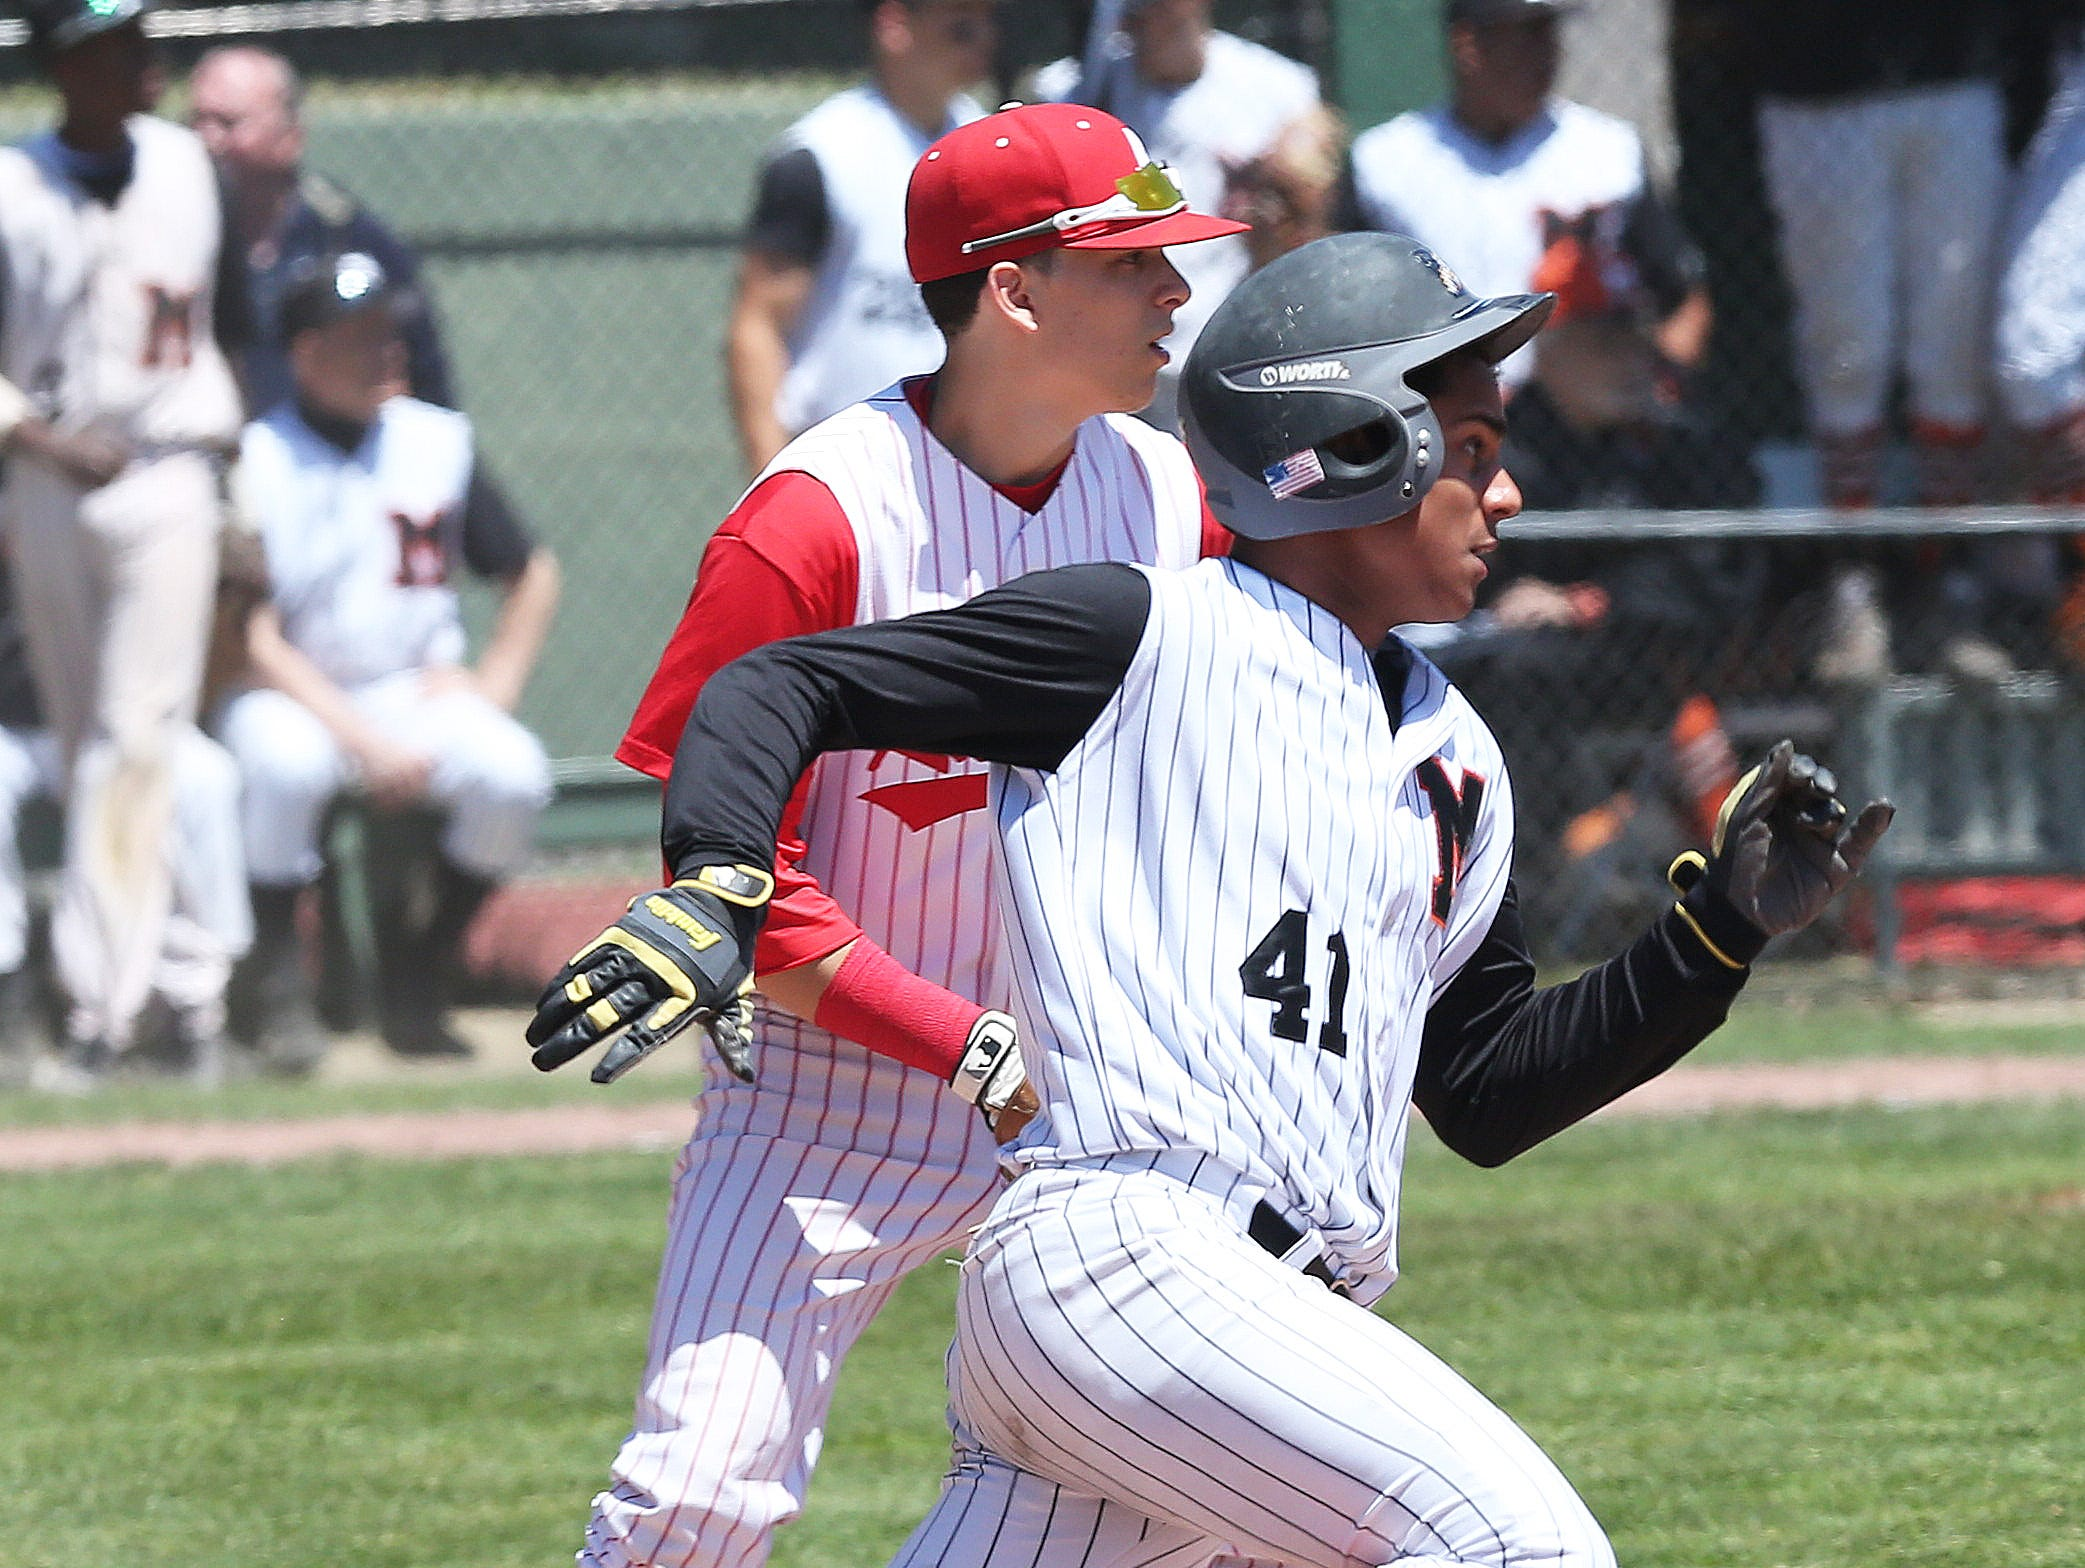 Mamaroneck's Kumar Nambiar rounds first on his way to second with a bases clearing double against North Rockland in a boys baseball playoff game at Mamaroneck High School on Saturday, May 23, 2015. Mamaroneck won the game 5-3.